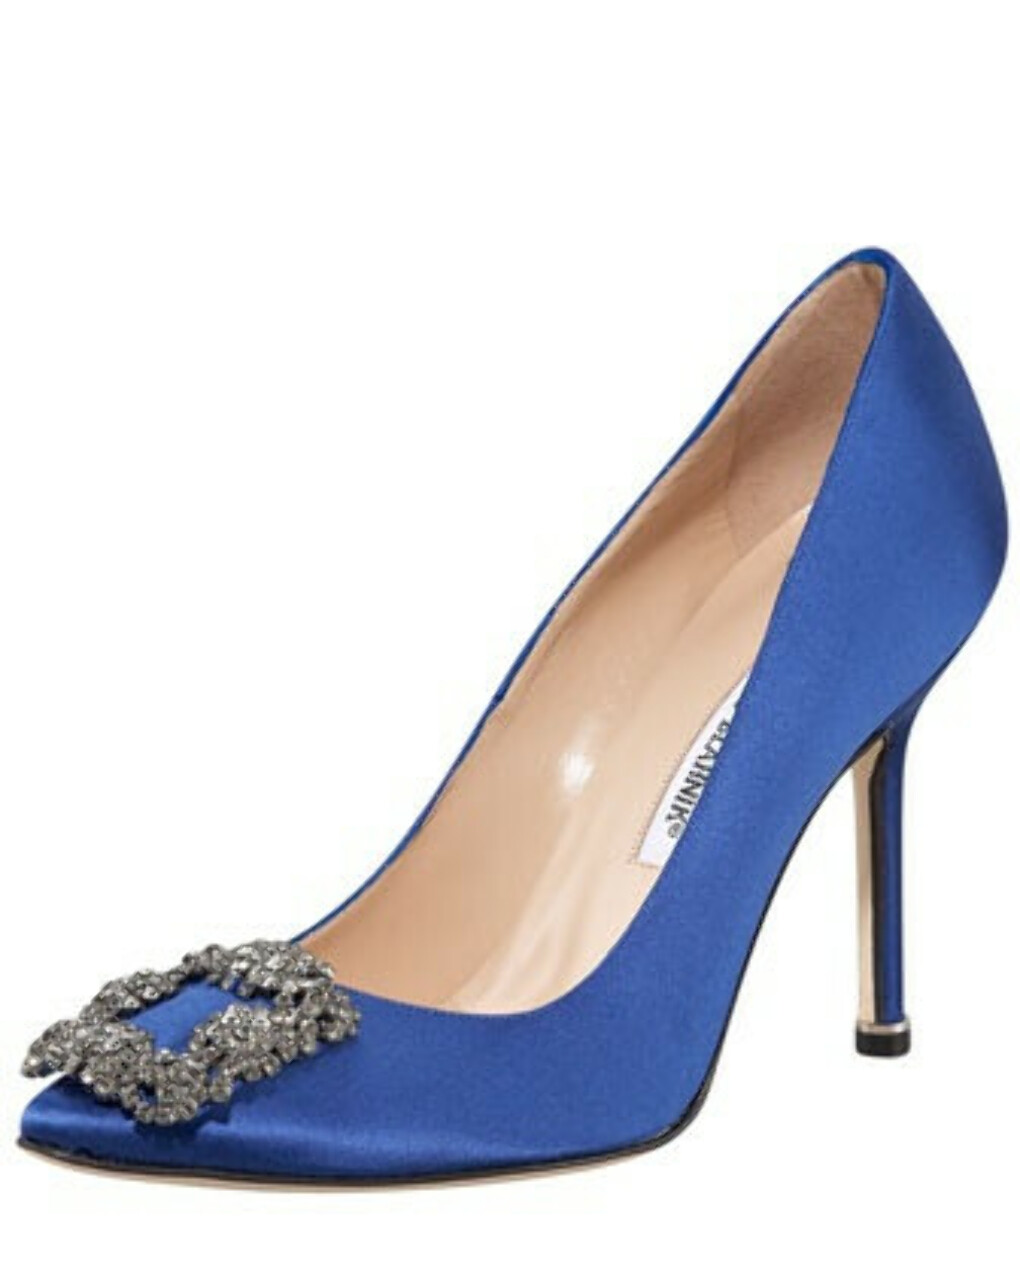 Hangisi Satin Pump, Cobalt Blue